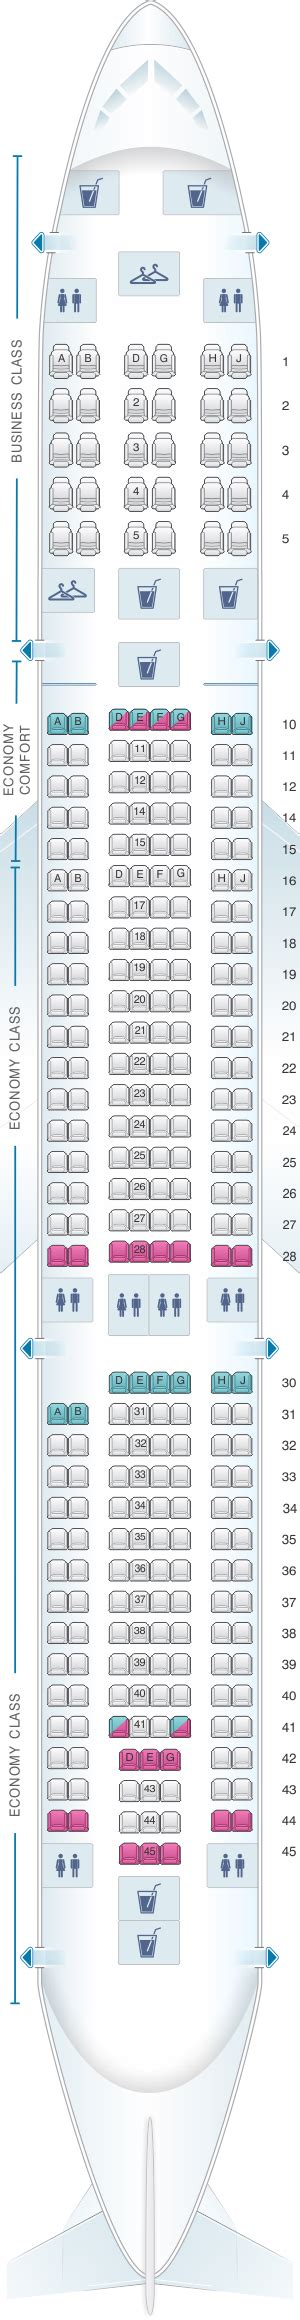 airbus a330 300 seating klm seat map klm airbus a330 300 seatmaestro